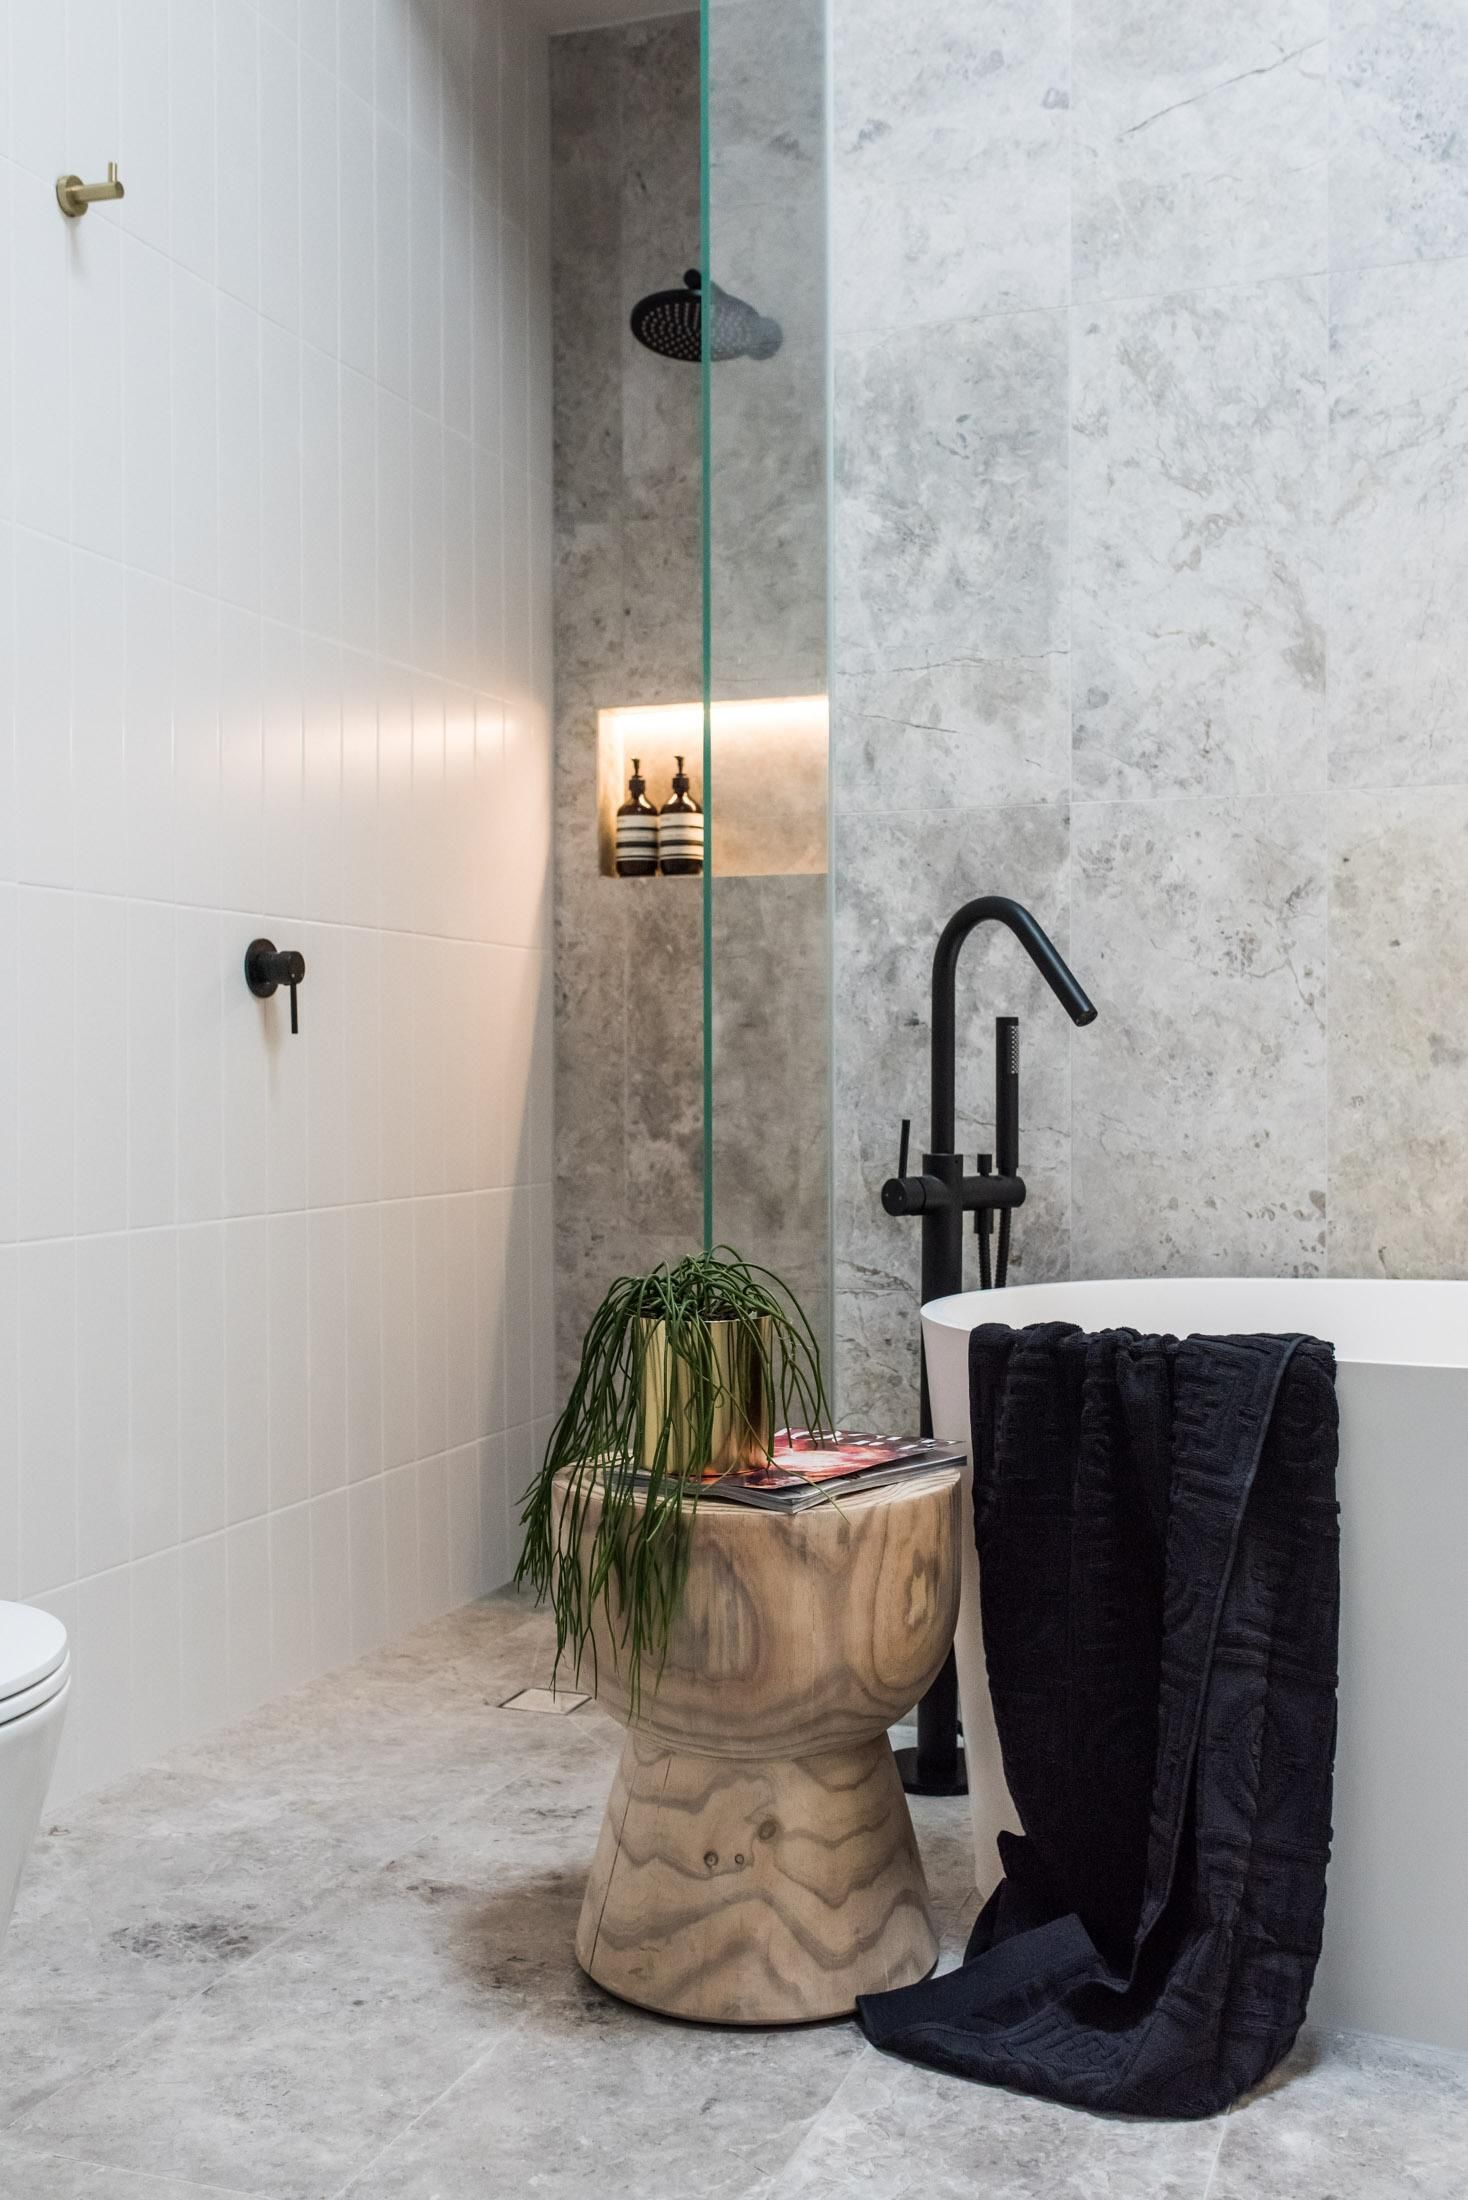 Meirblack In The Prahan Melbourne Project By Embracingspace Build 7towns Capture Mstahneejade Bathroom Renovation Cost House Decor Modern Room Tiles